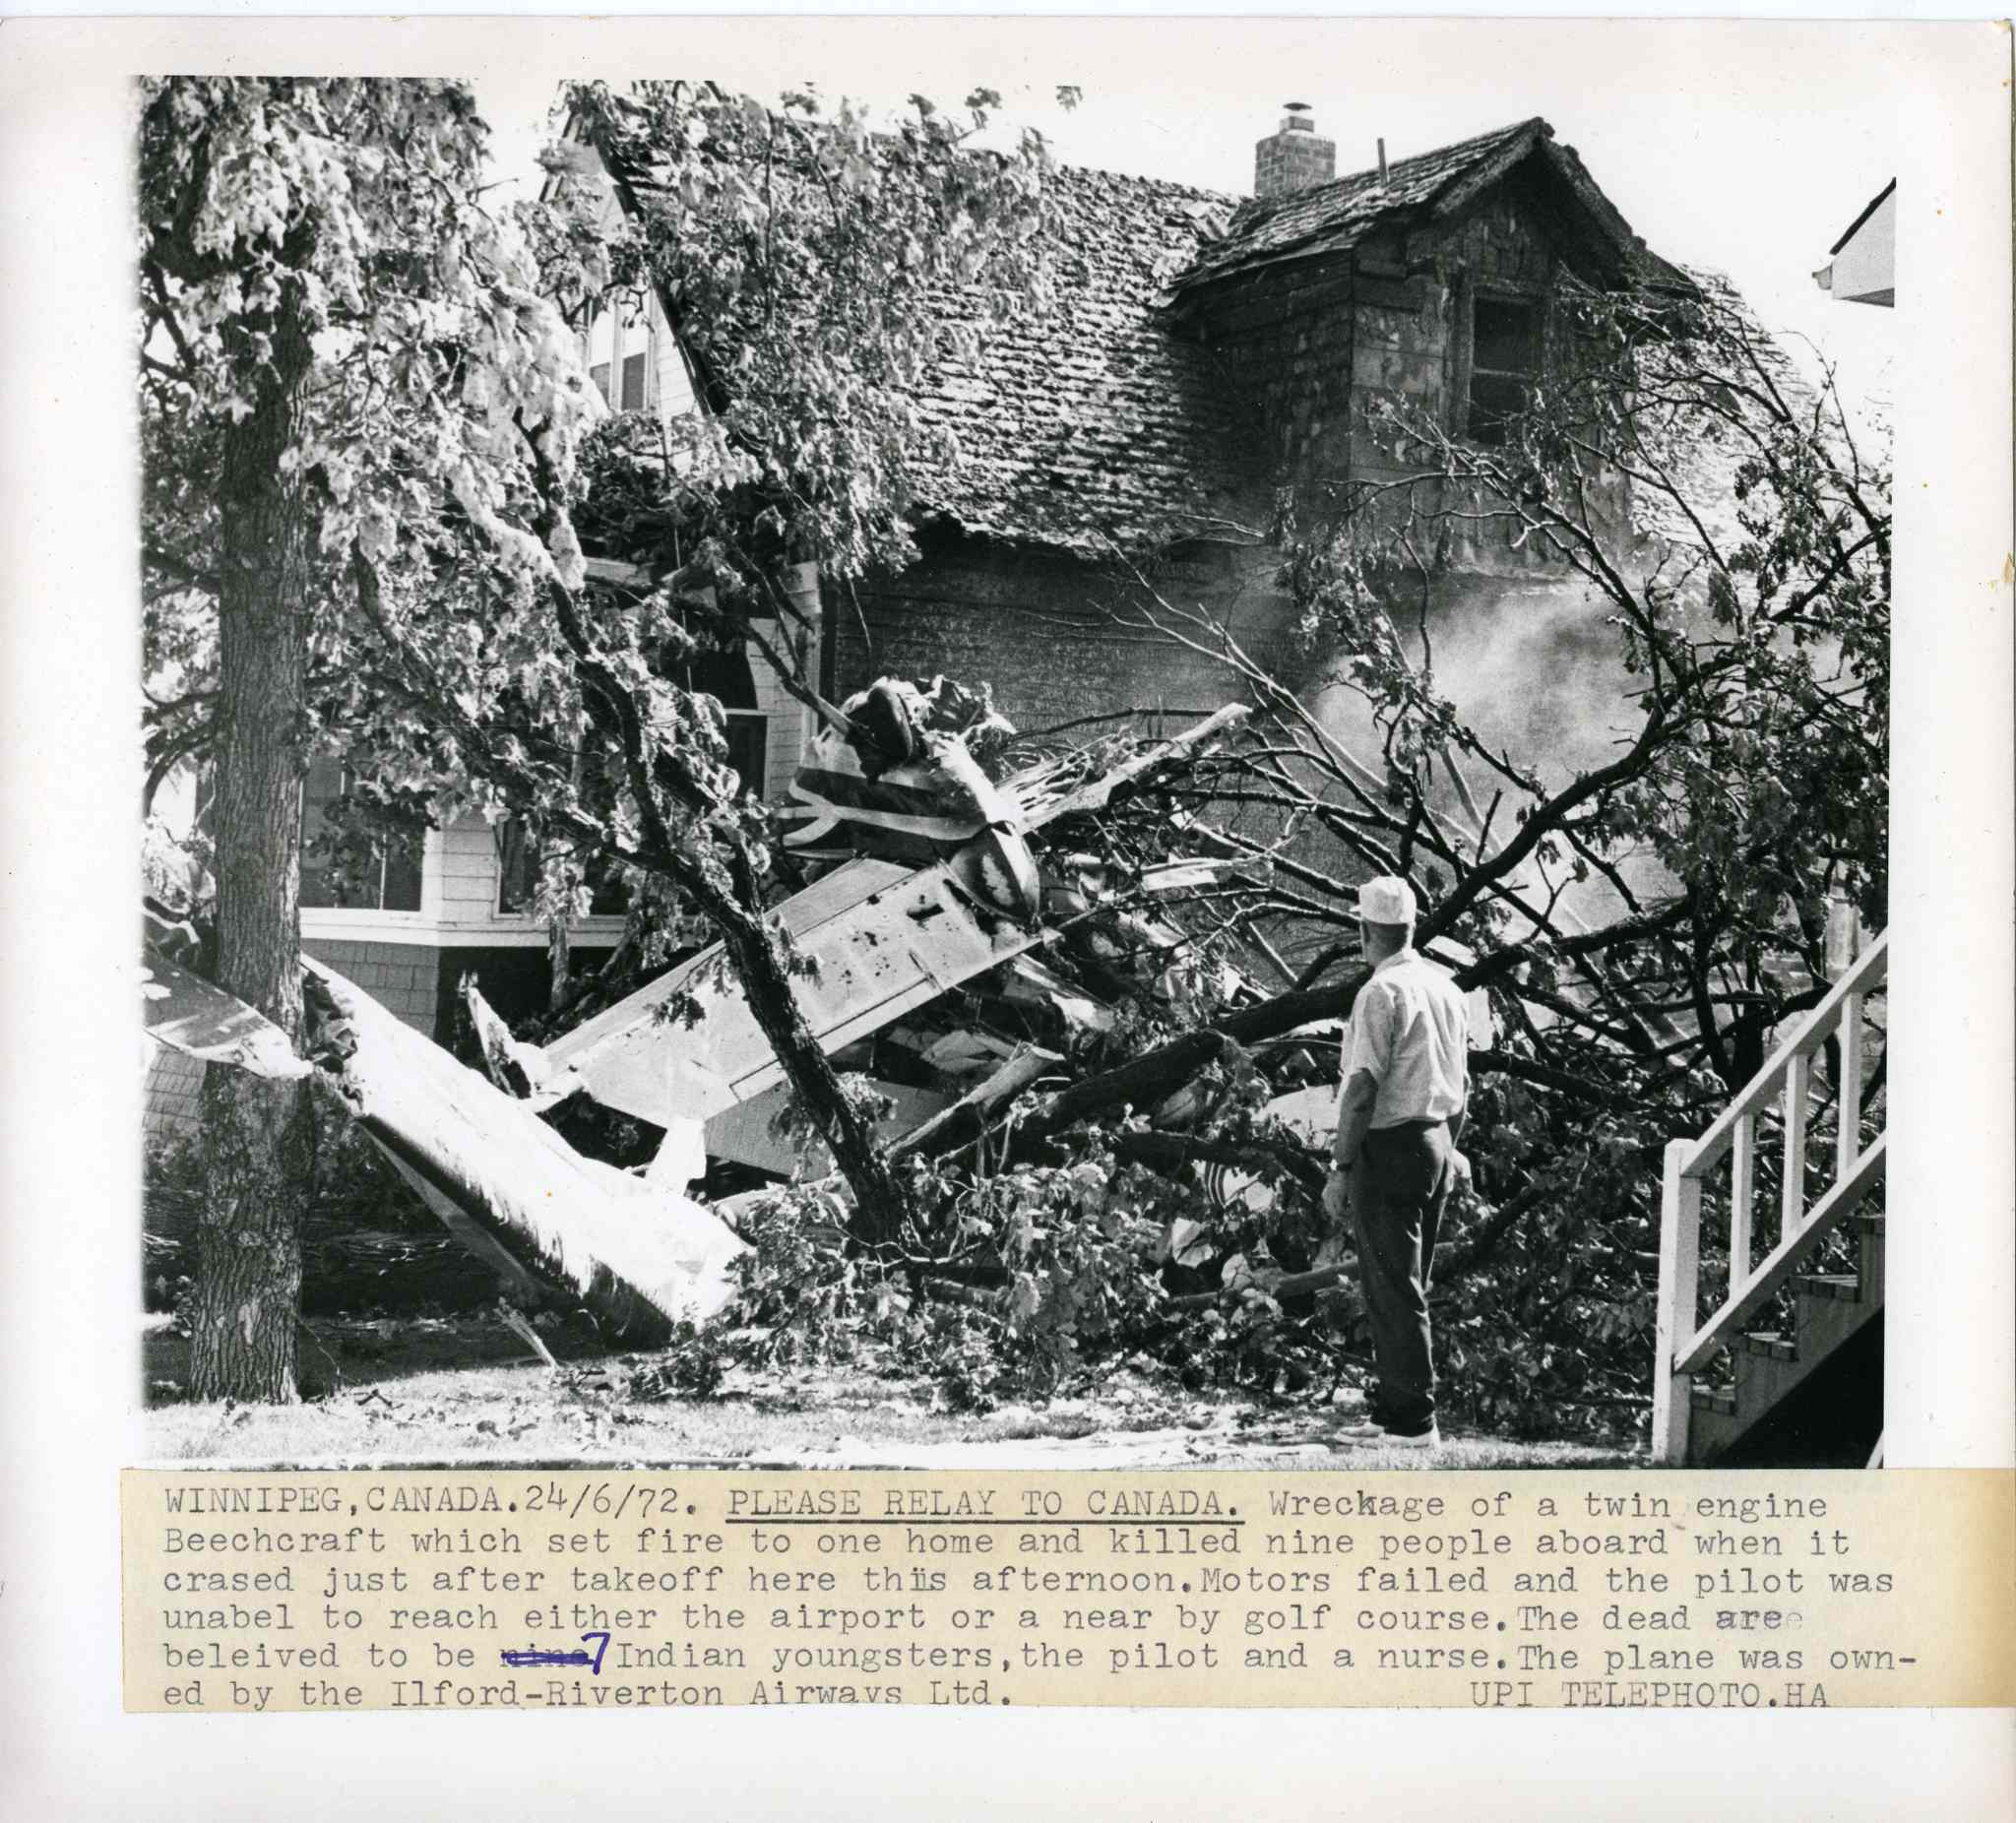 Wreckage of a twin engine Beechcraft which set fire to one home and killed nine people on board when it crashed just after takeoff in 1972.